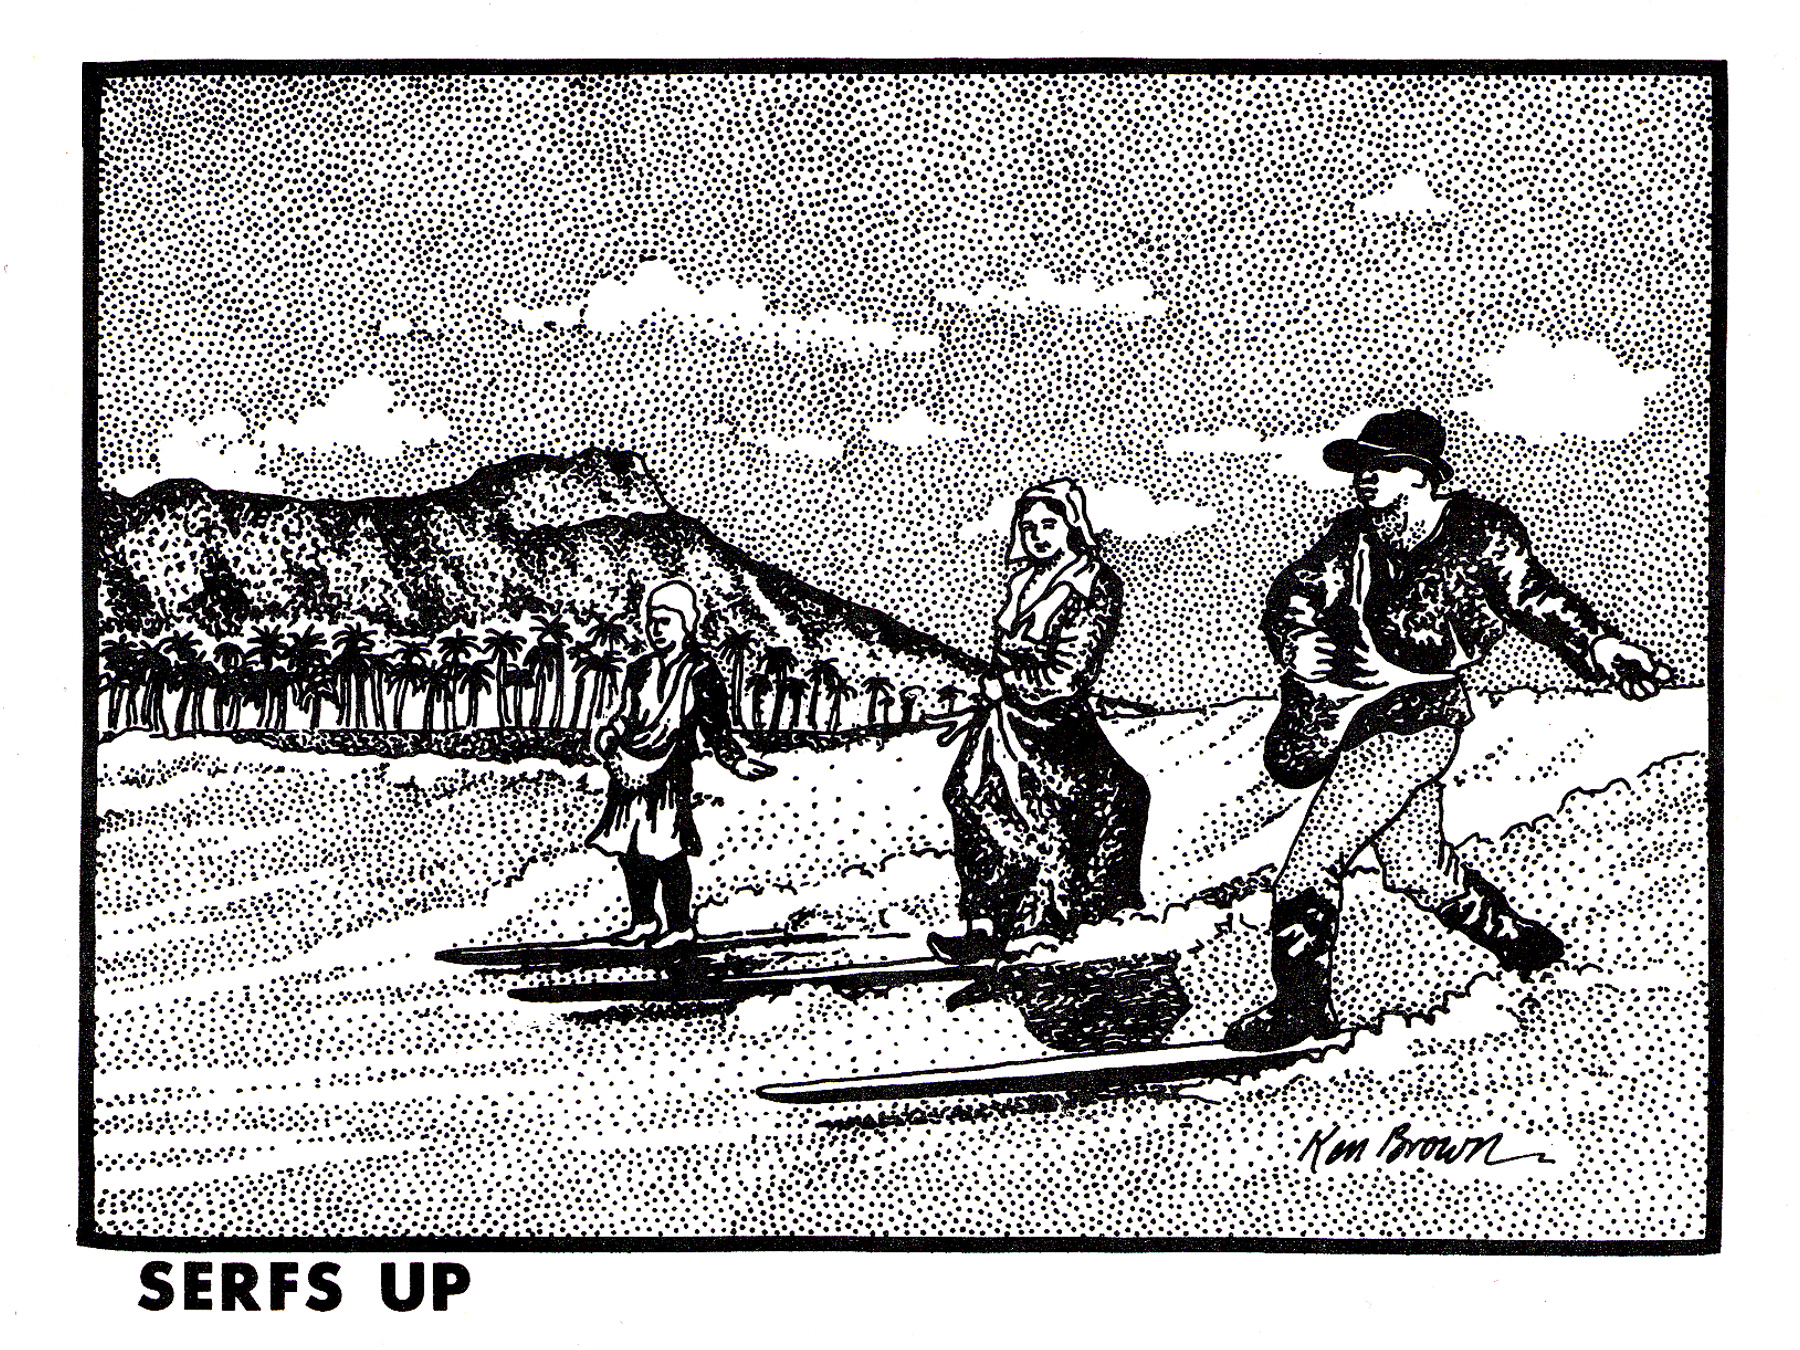 PC-CARTOON B_W-SERFS UP.jpg